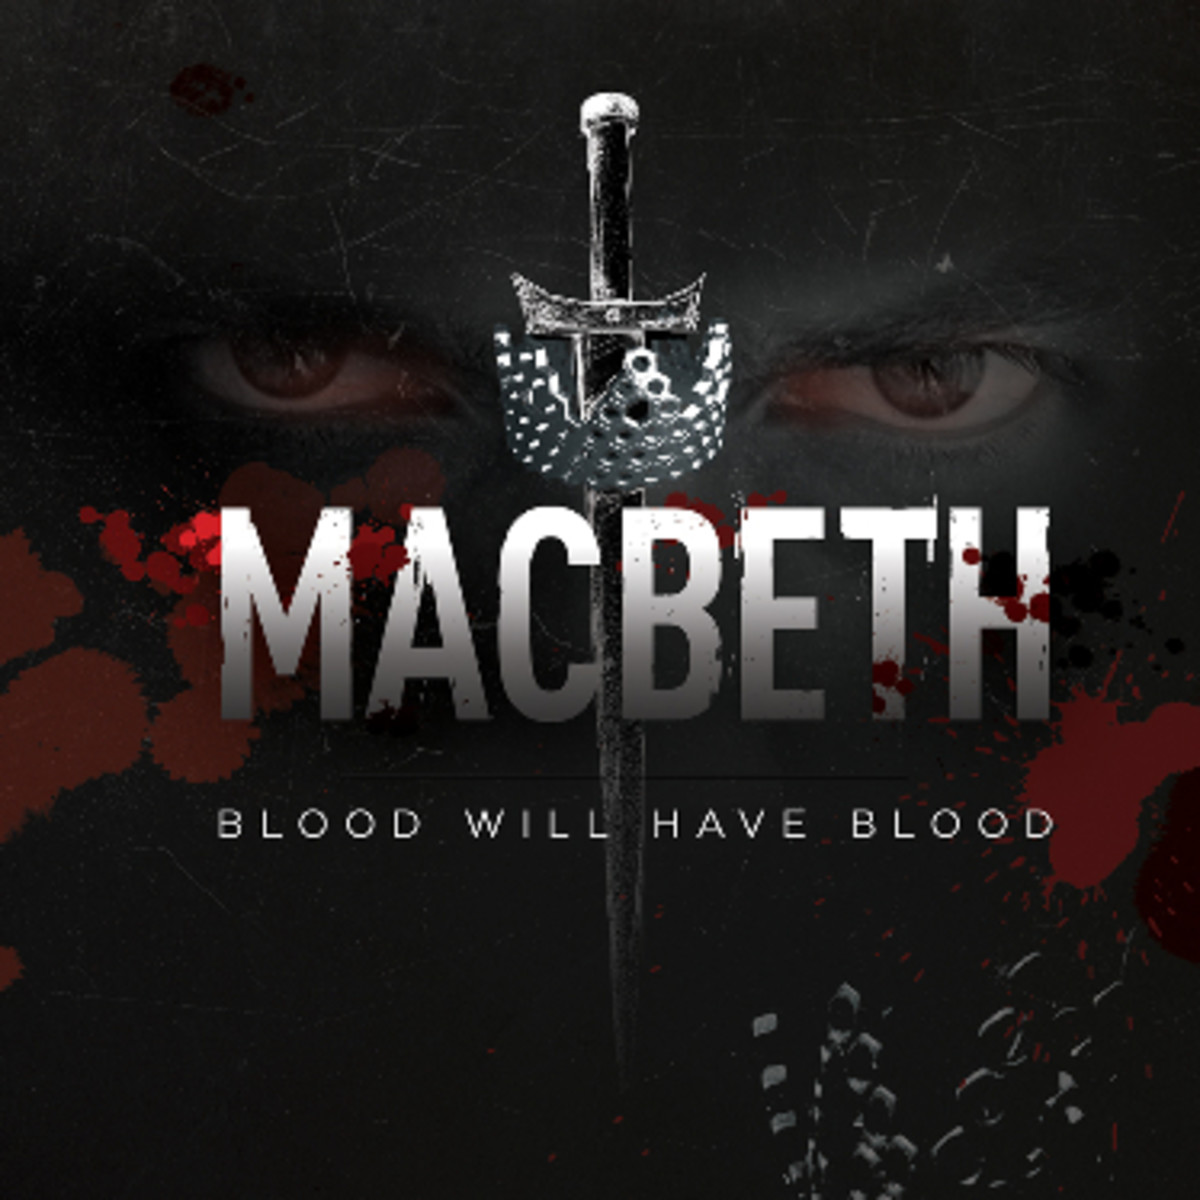 analysis-on-macbeth-are-humans-inherently-good-or-evil